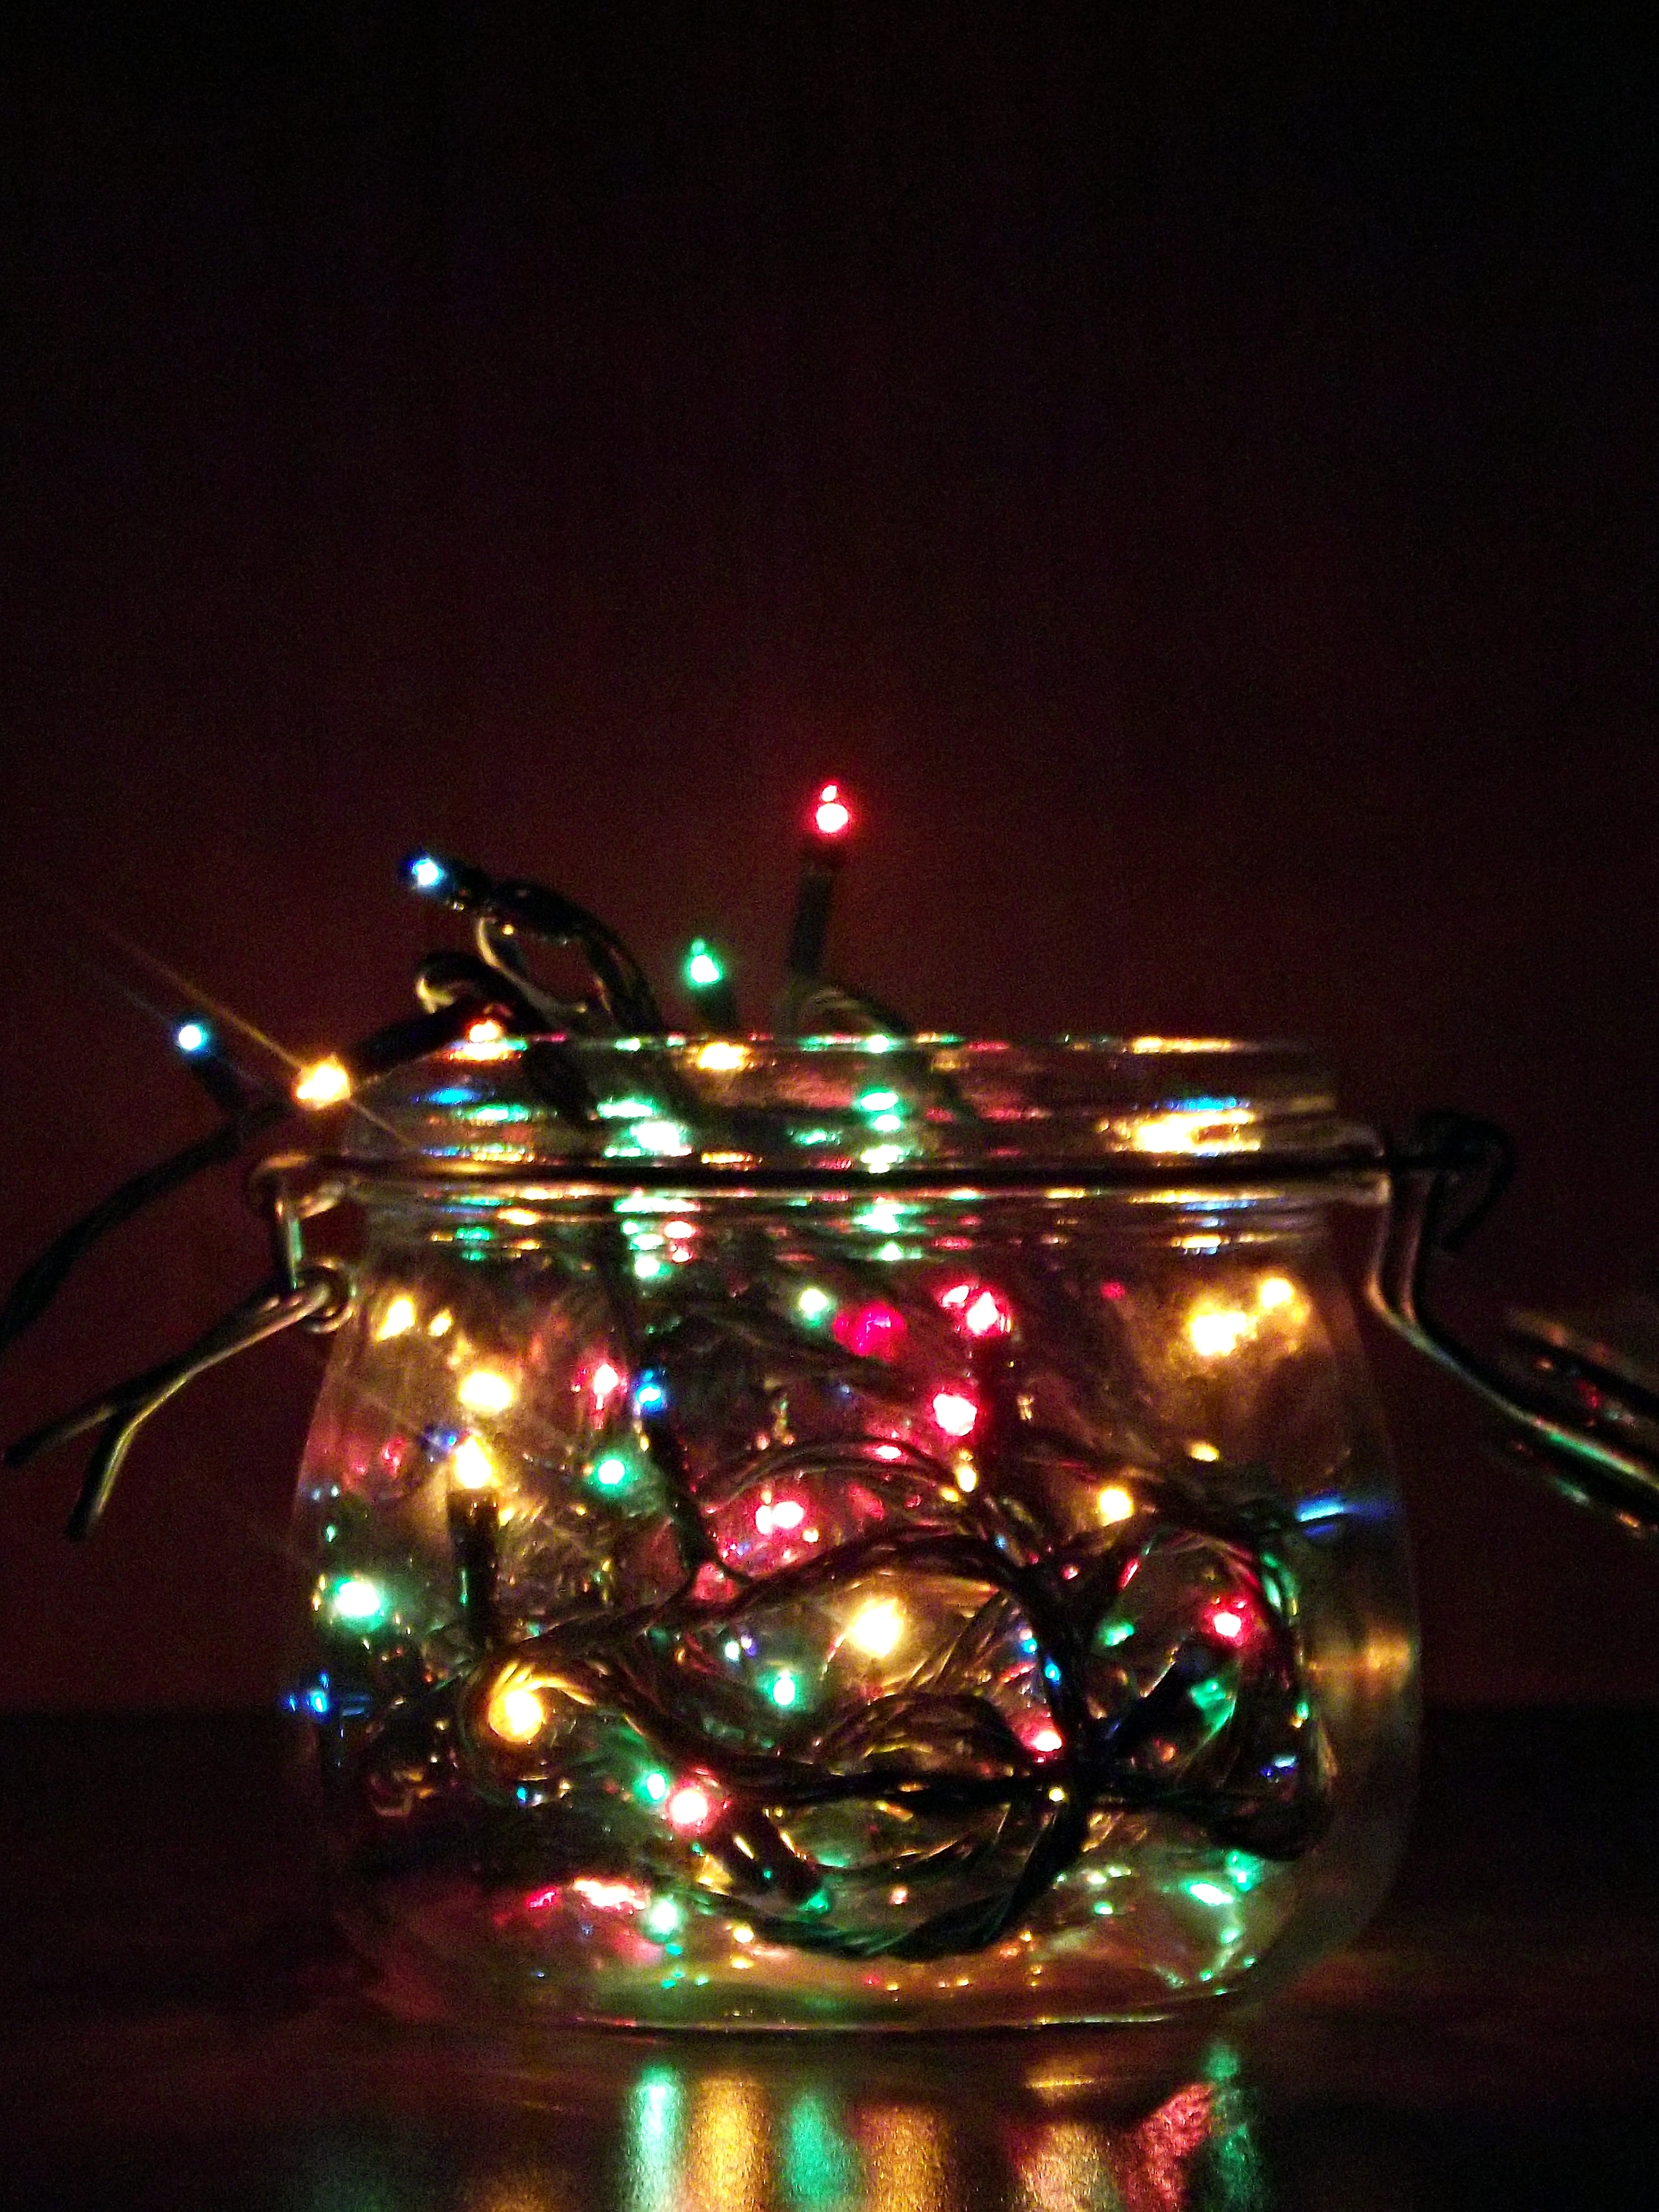 A glass jar containing Christmas tree lights.